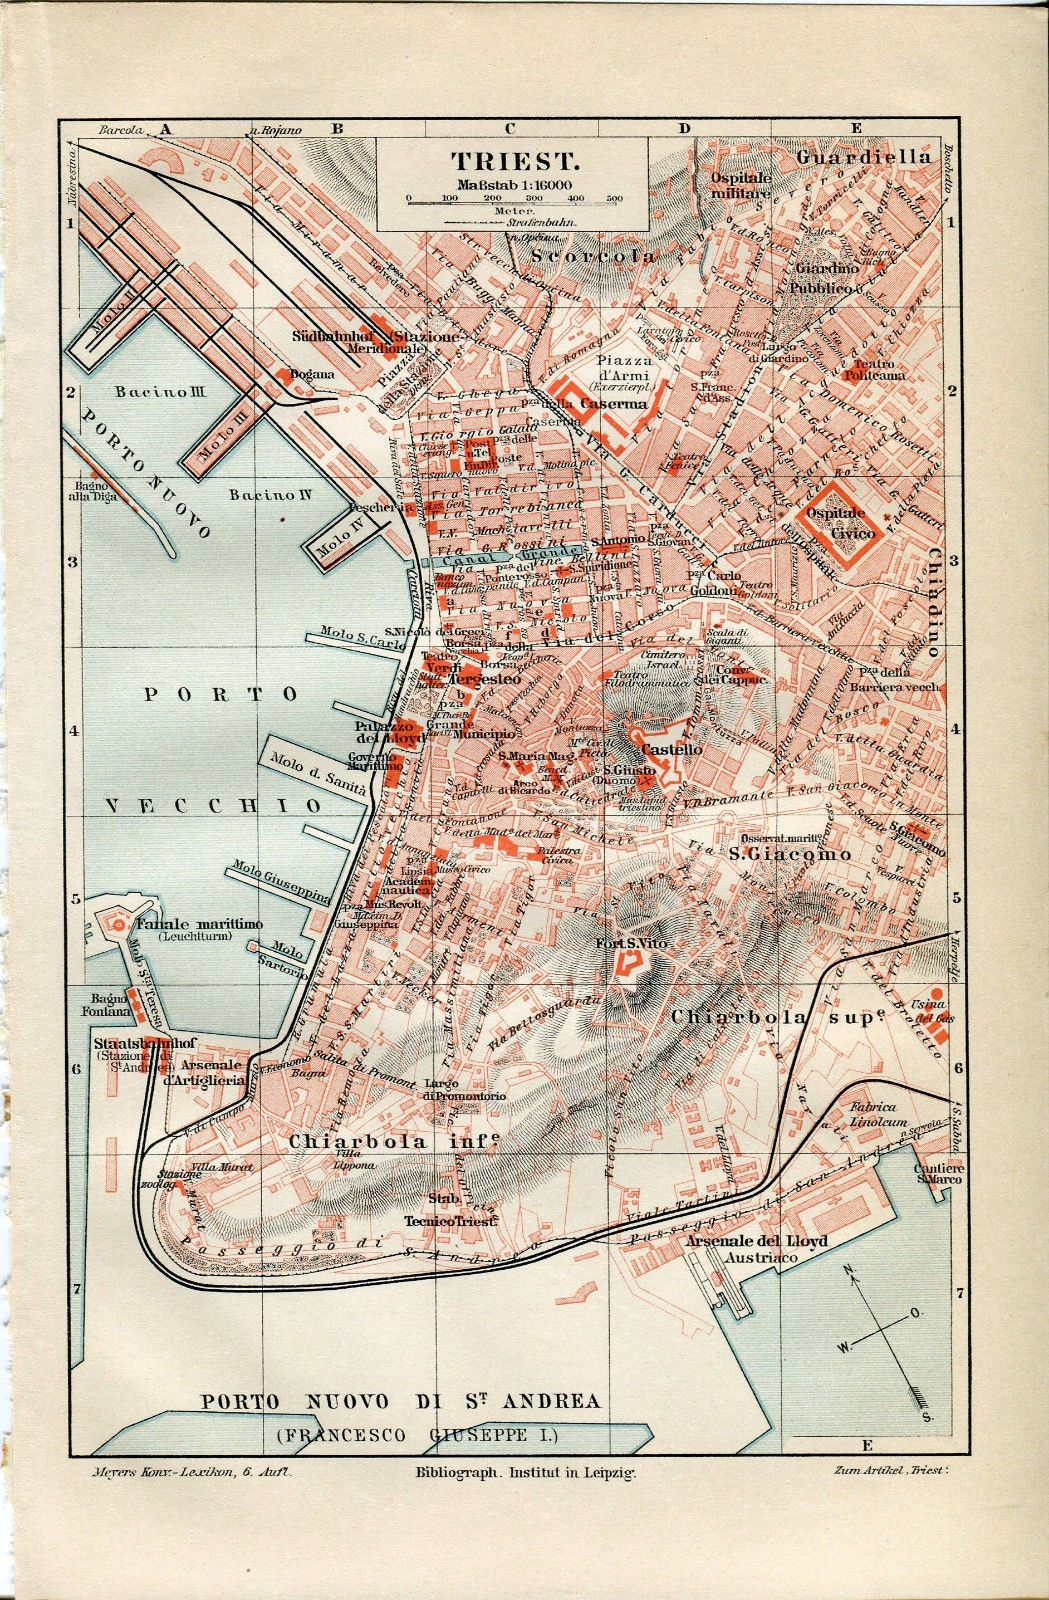 1894 ITALY Trieste City Plan Antique Map | eBay | Trieste ...